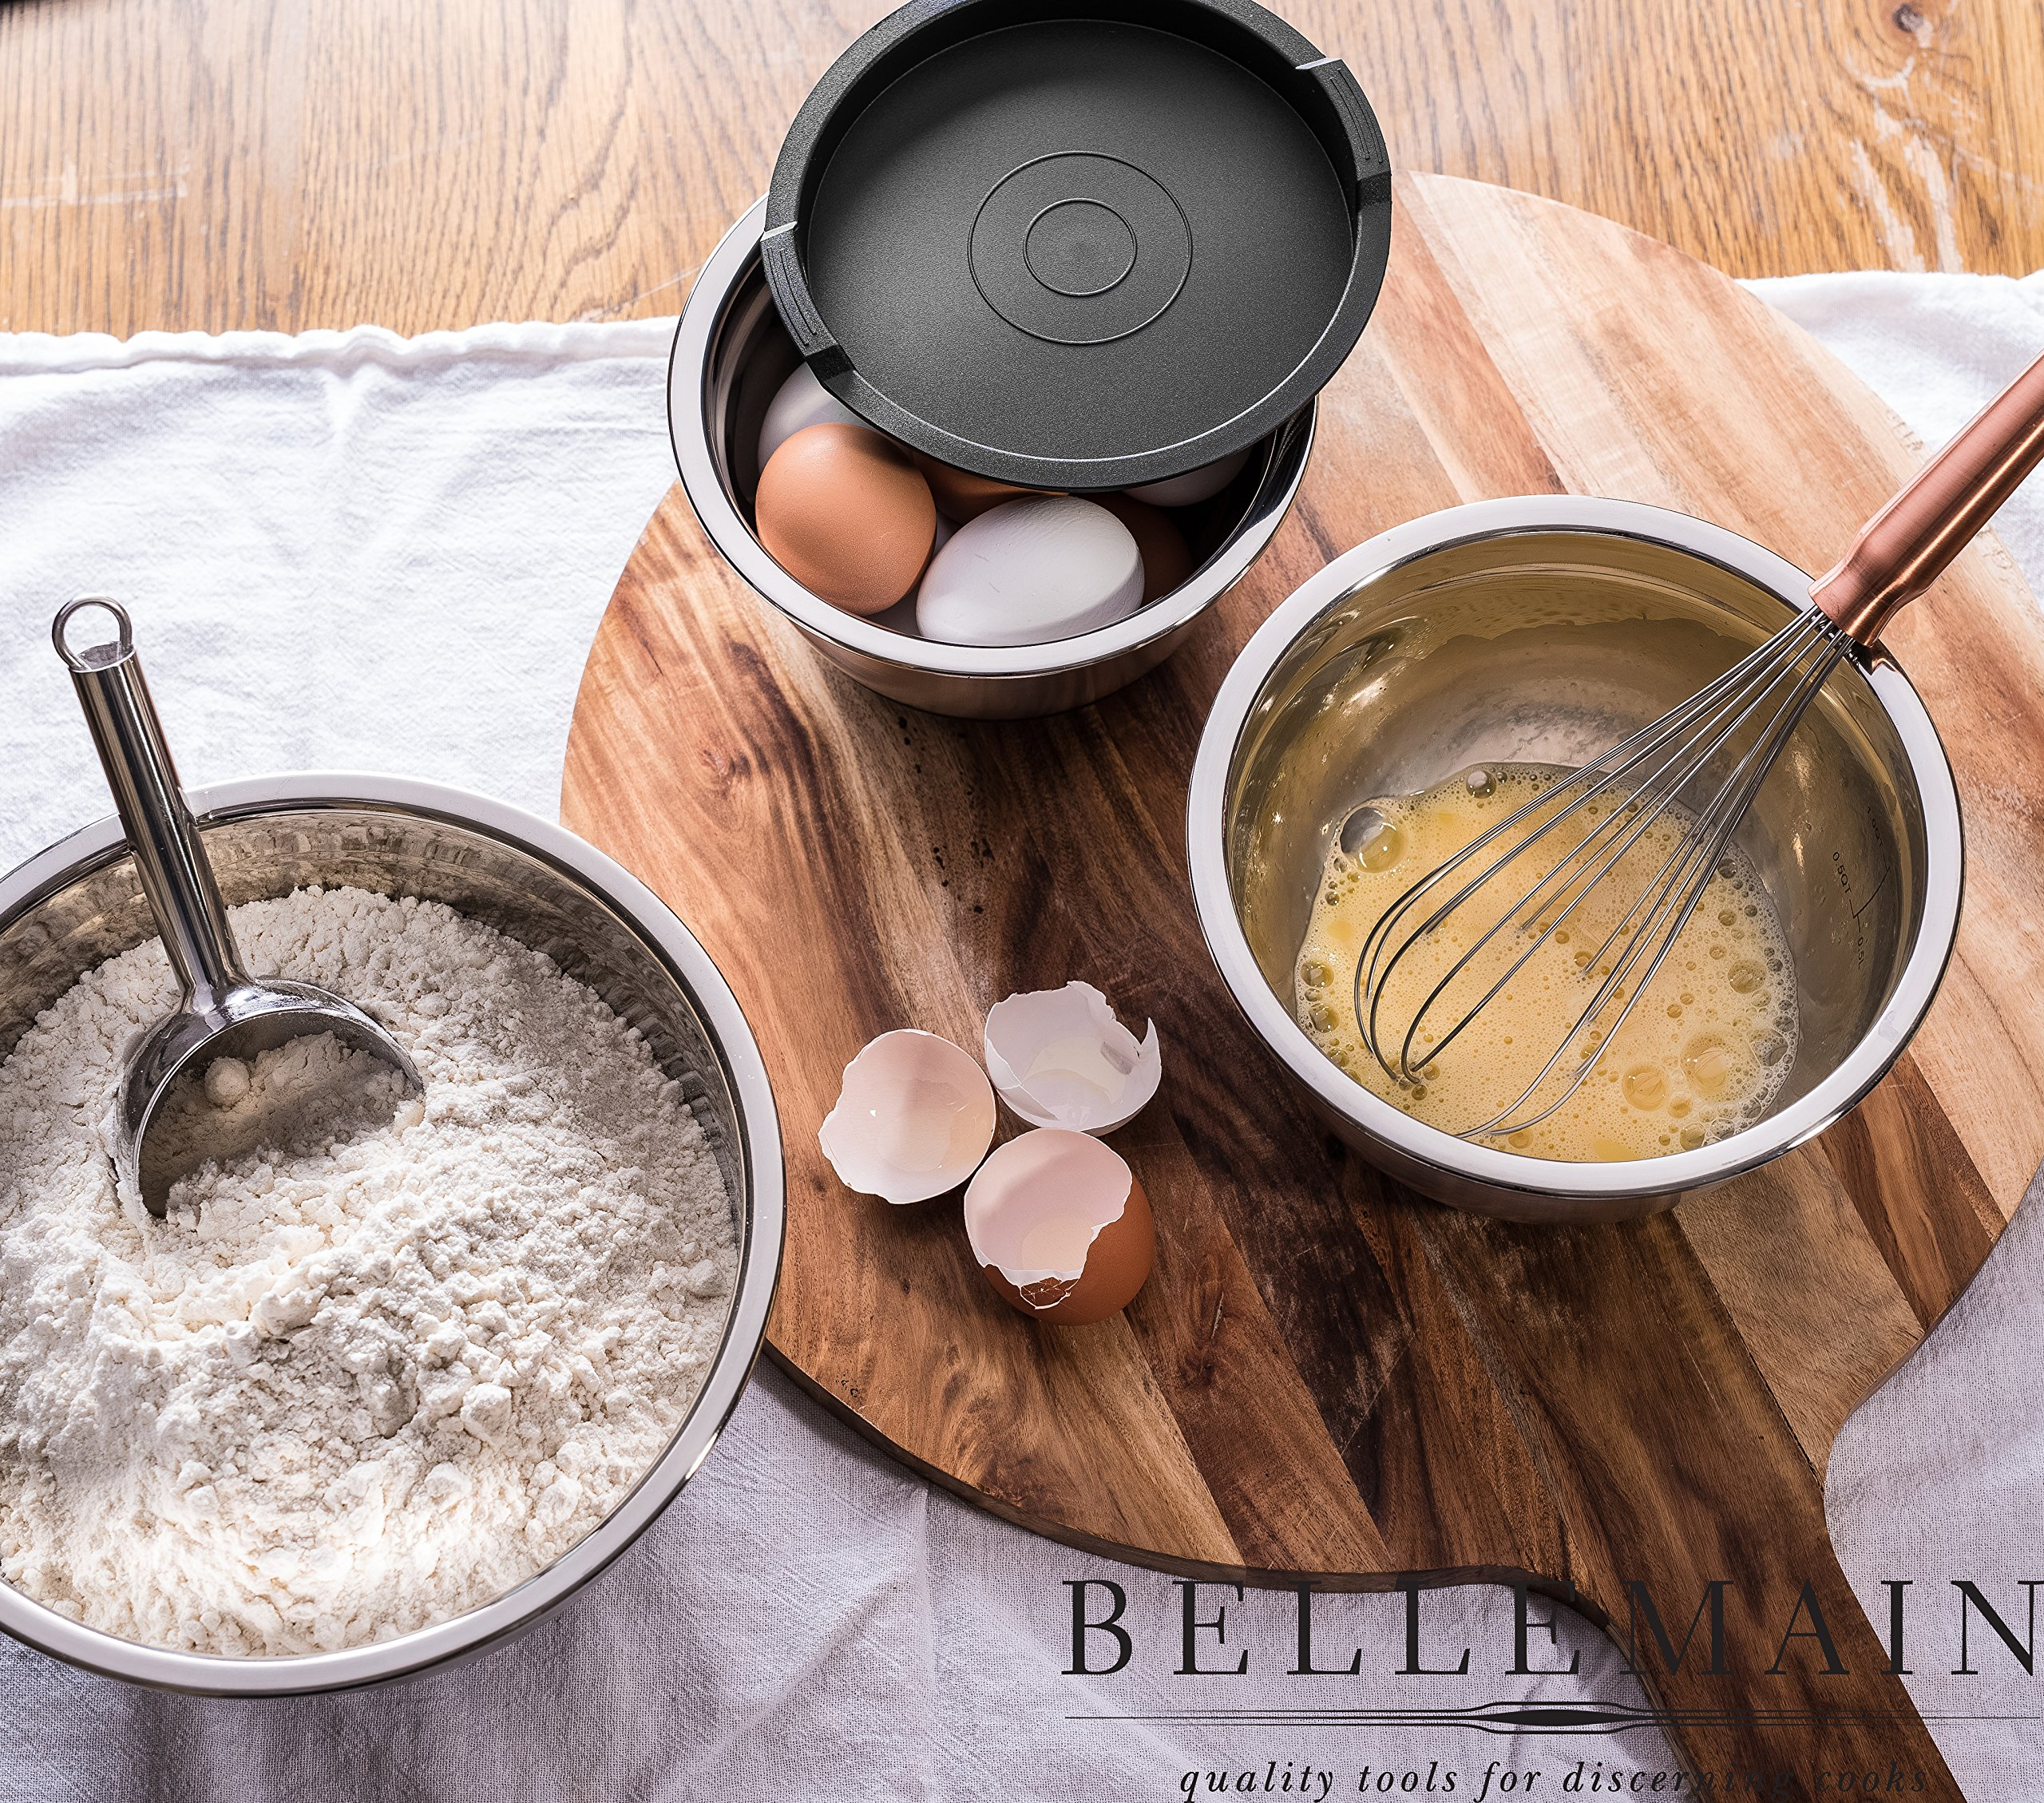 Top Rated Bellemain Stainless Steel Non-Slip Mixing Bowls with Lids, 4 Piece Set Includes 1 Qt, 1.5 Qt, 3 Qt. & 5 Qt. by Bellemain (Image #4)